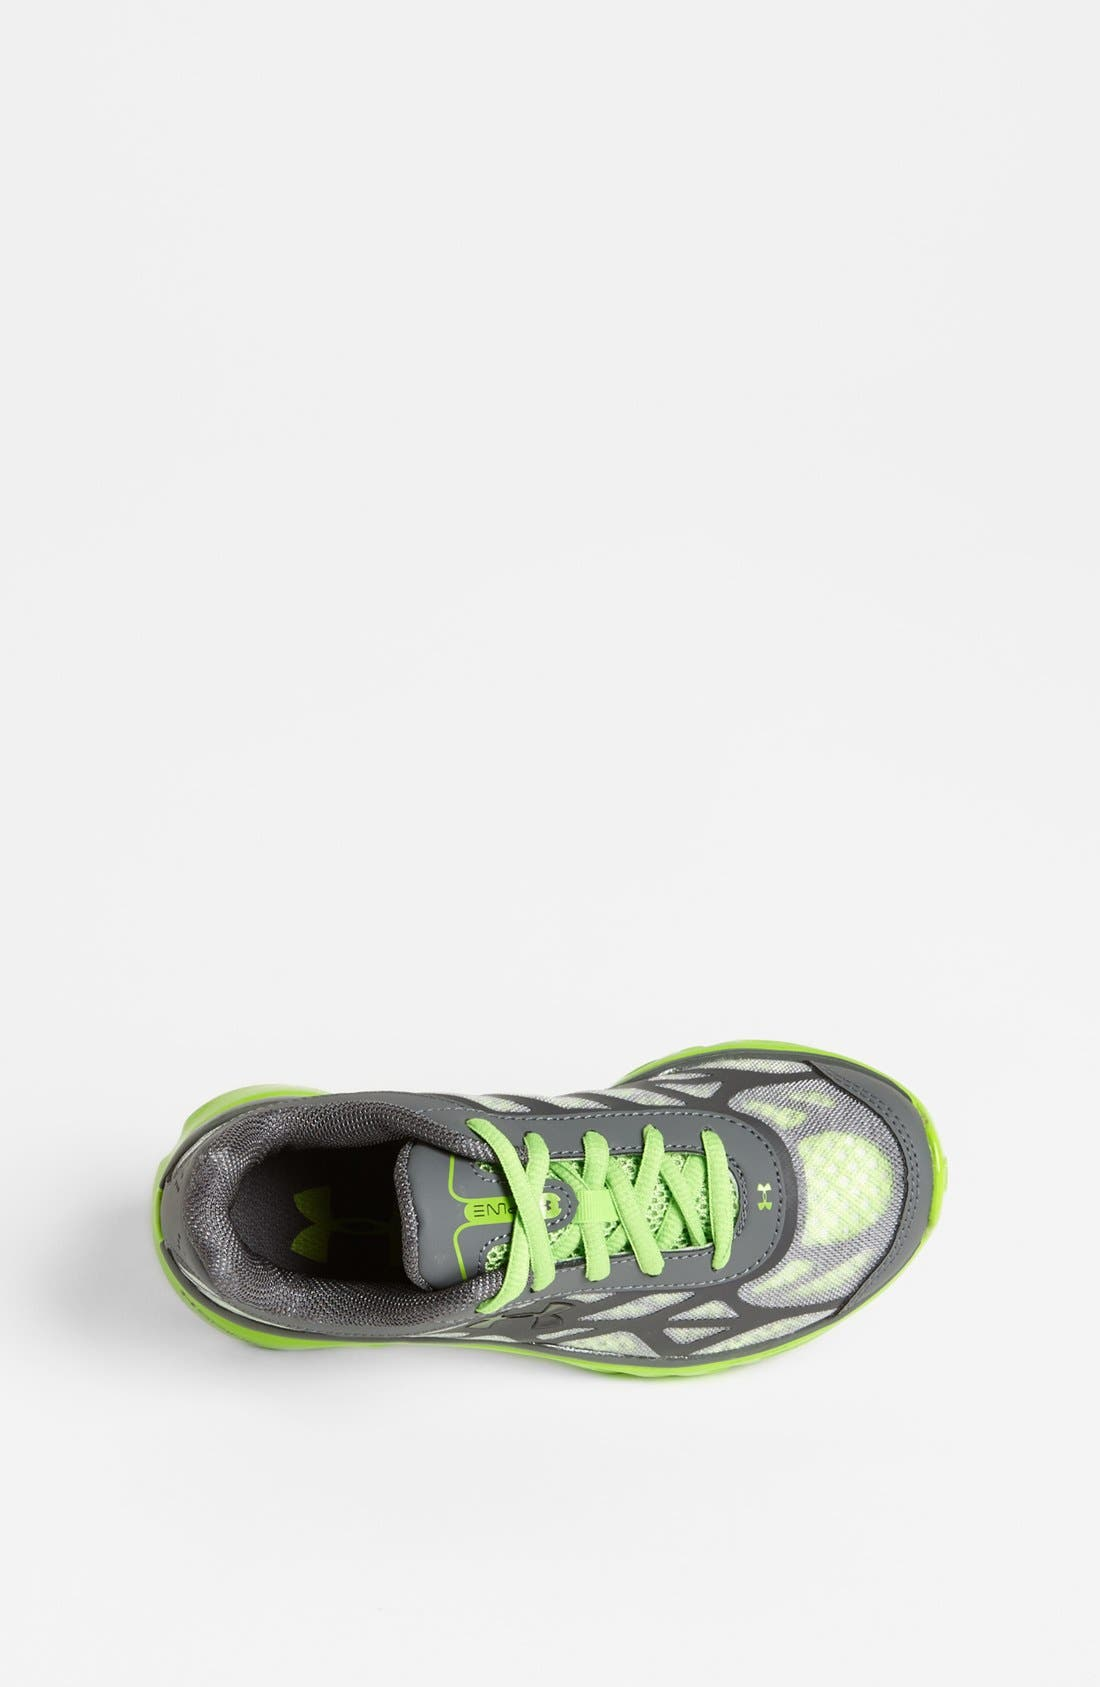 Alternate Image 3  - Under Armour 'Spine™ Vice' Athletic Shoe (Toddler, Little Kid & Big Kid)